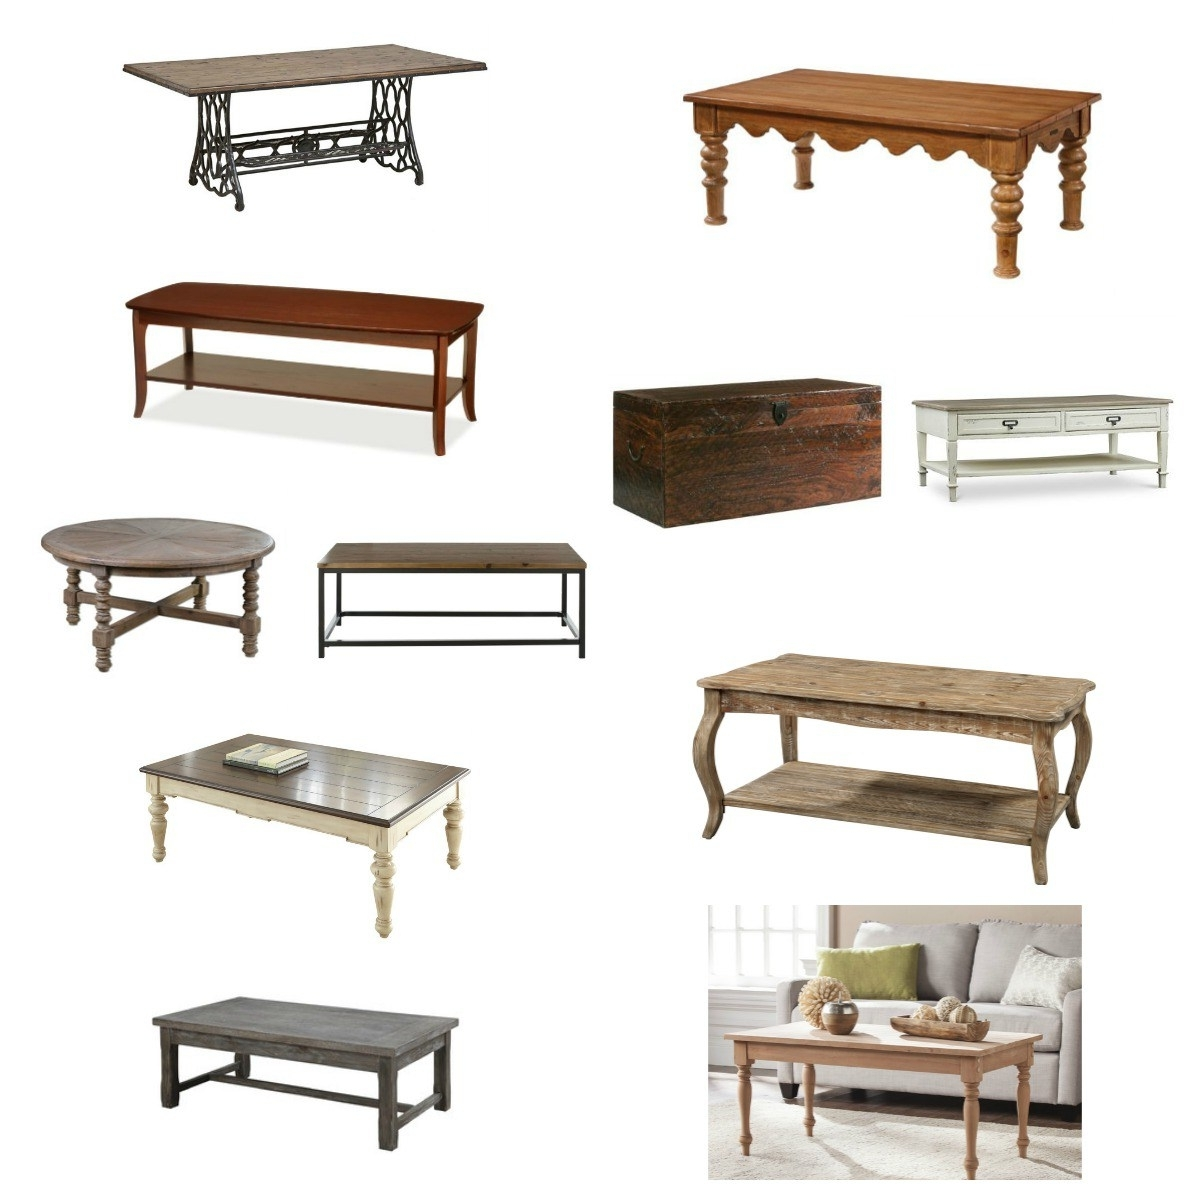 Current Magnolia Home Scallop Antique White Cocktail Tables Regarding 11 Coffee Tables With Farmhouse Charm (View 4 of 20)